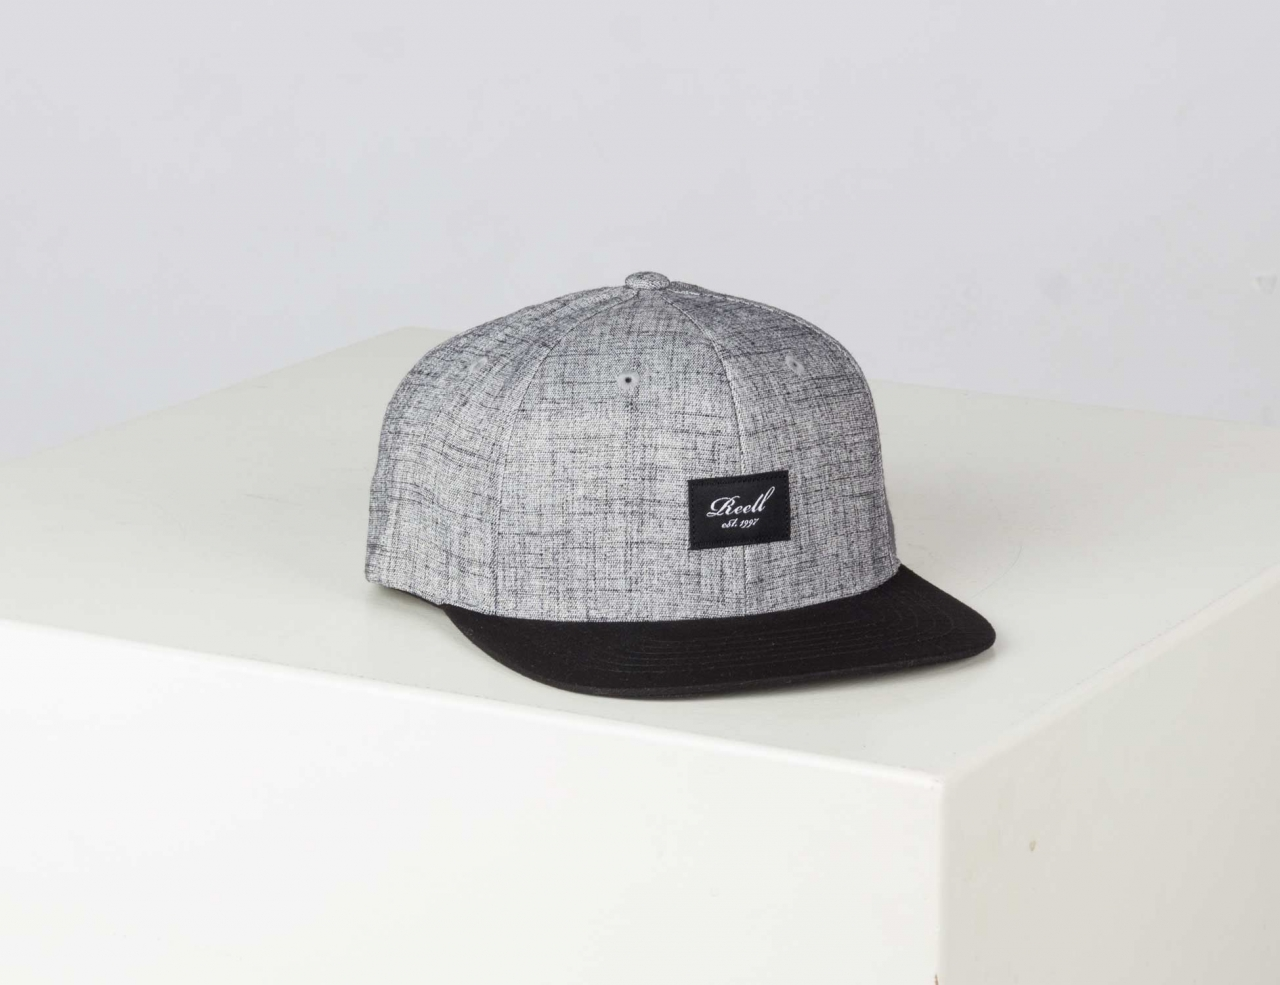 Reell Jeans Pitchout Cap - Heather Grey / Washed Black